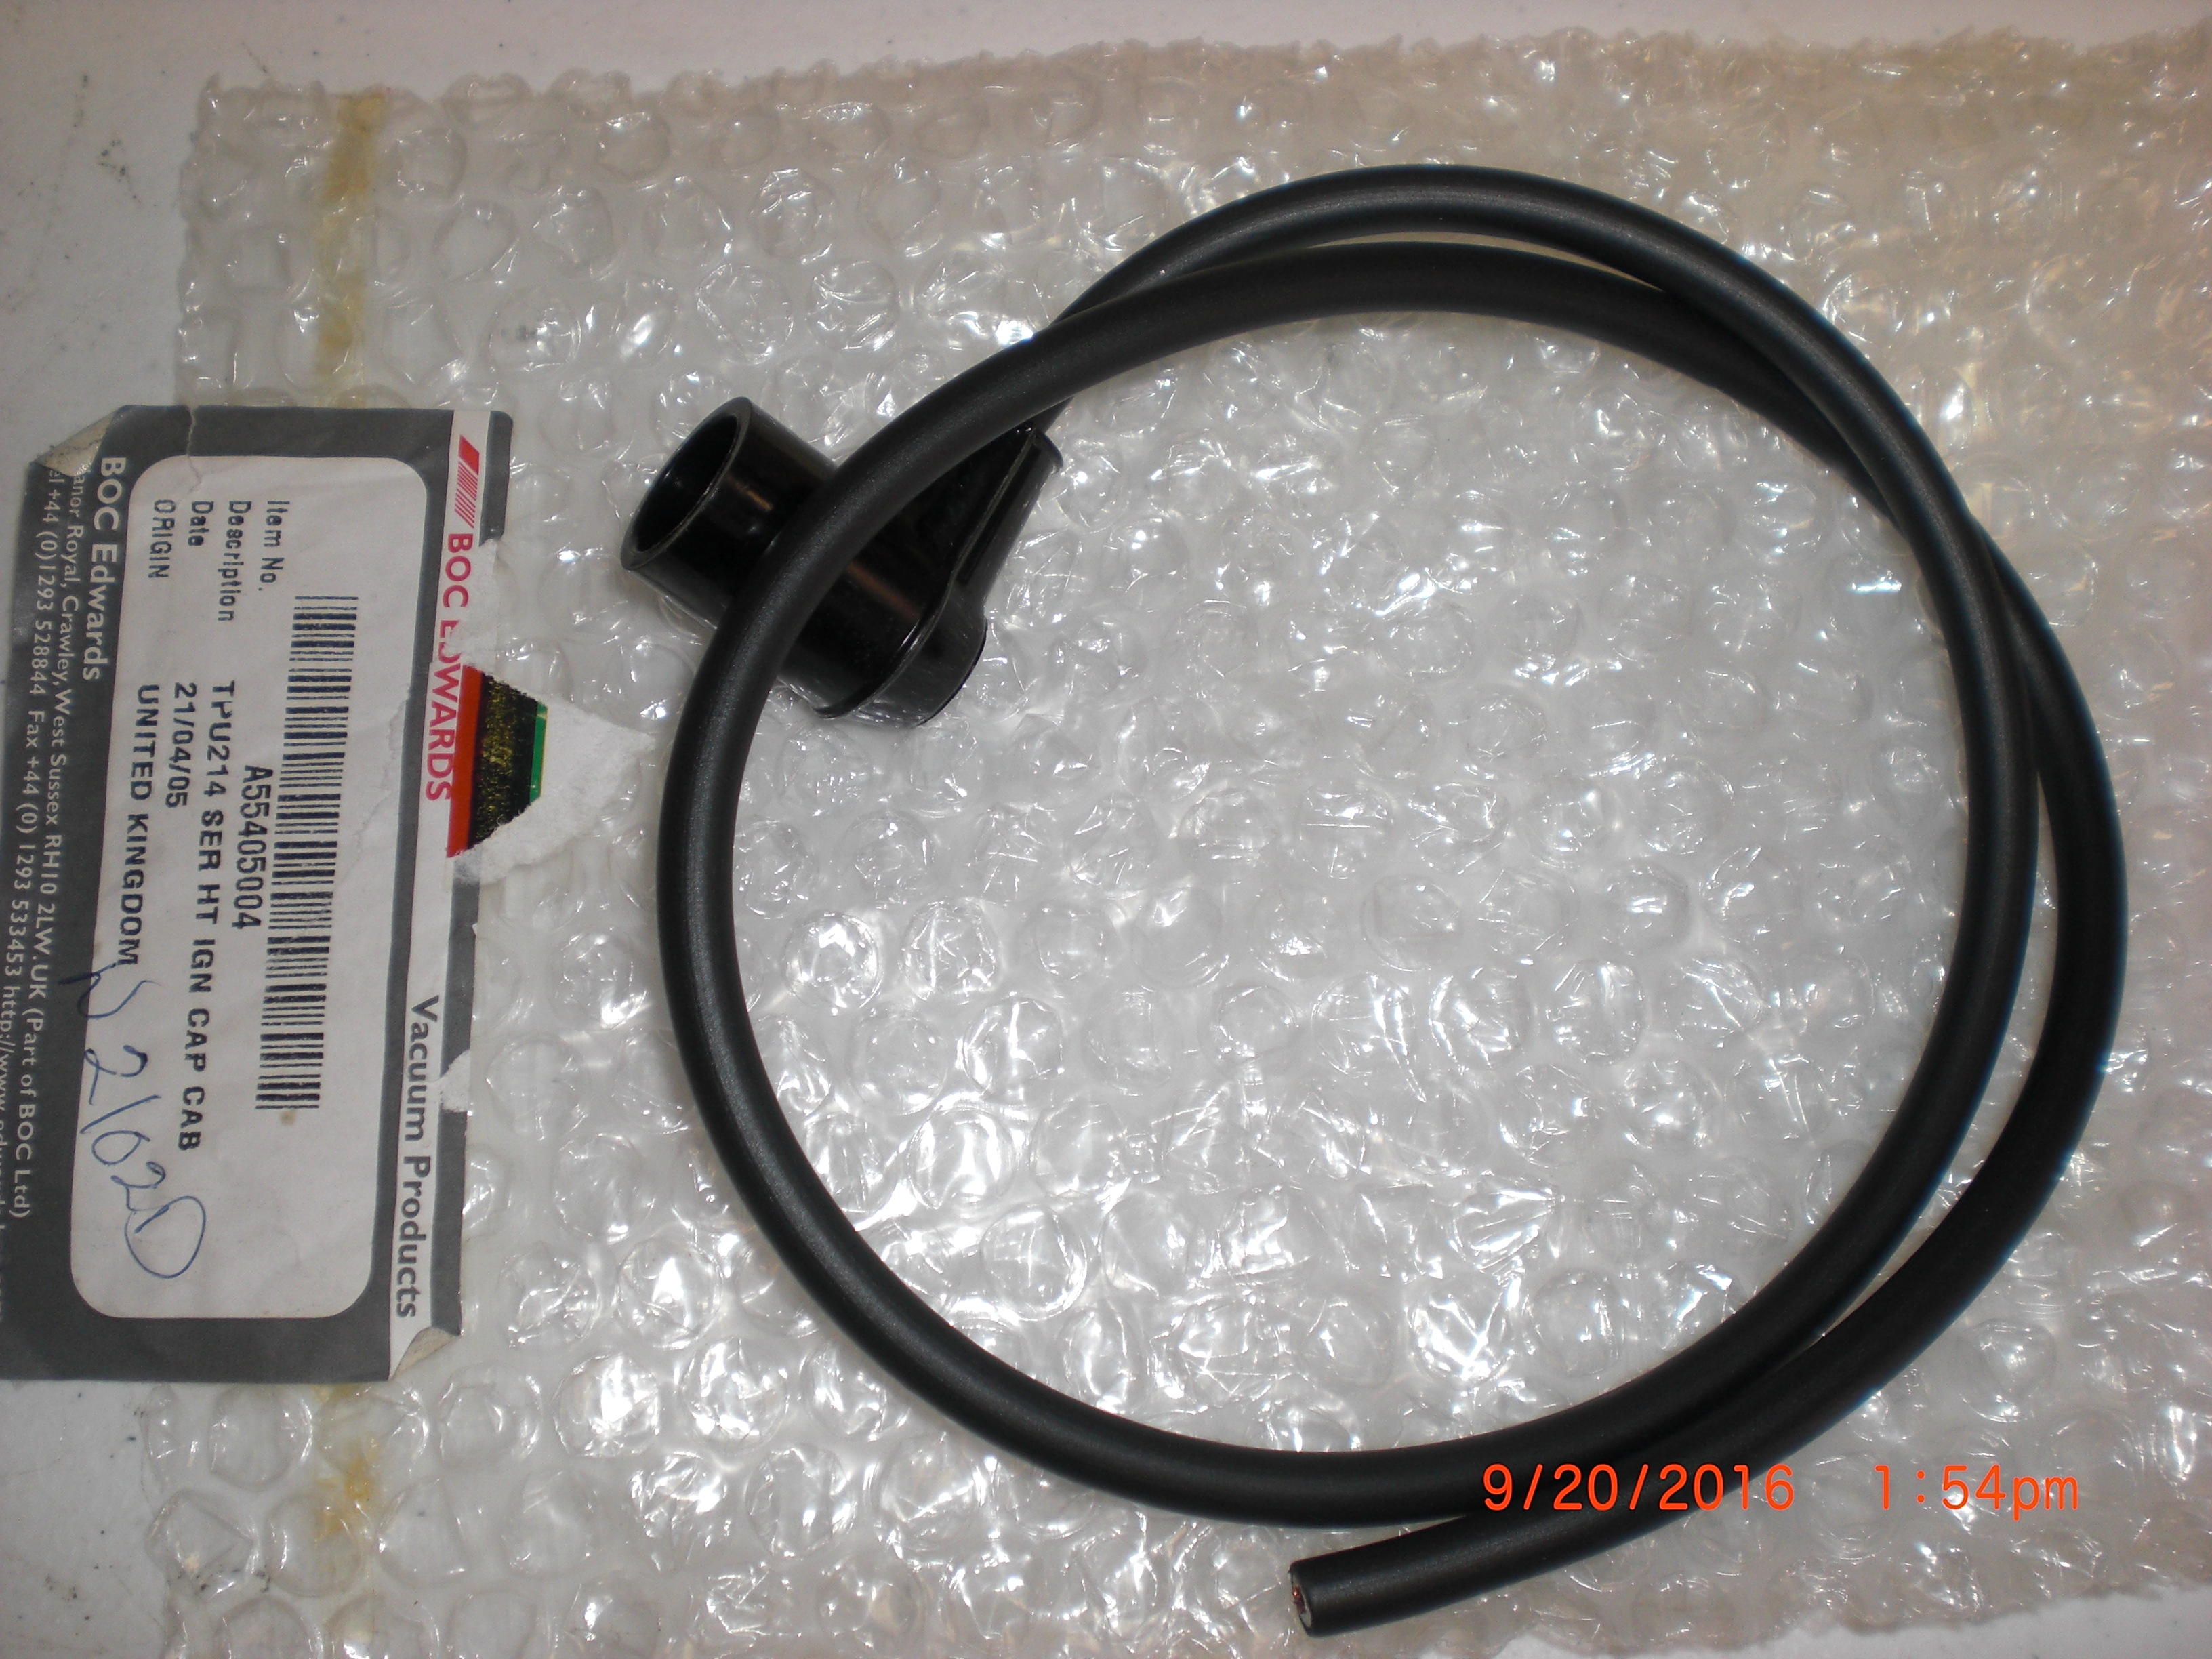 Cable Edwards A55405004 TPU214 SER HT IGN CAP CAB